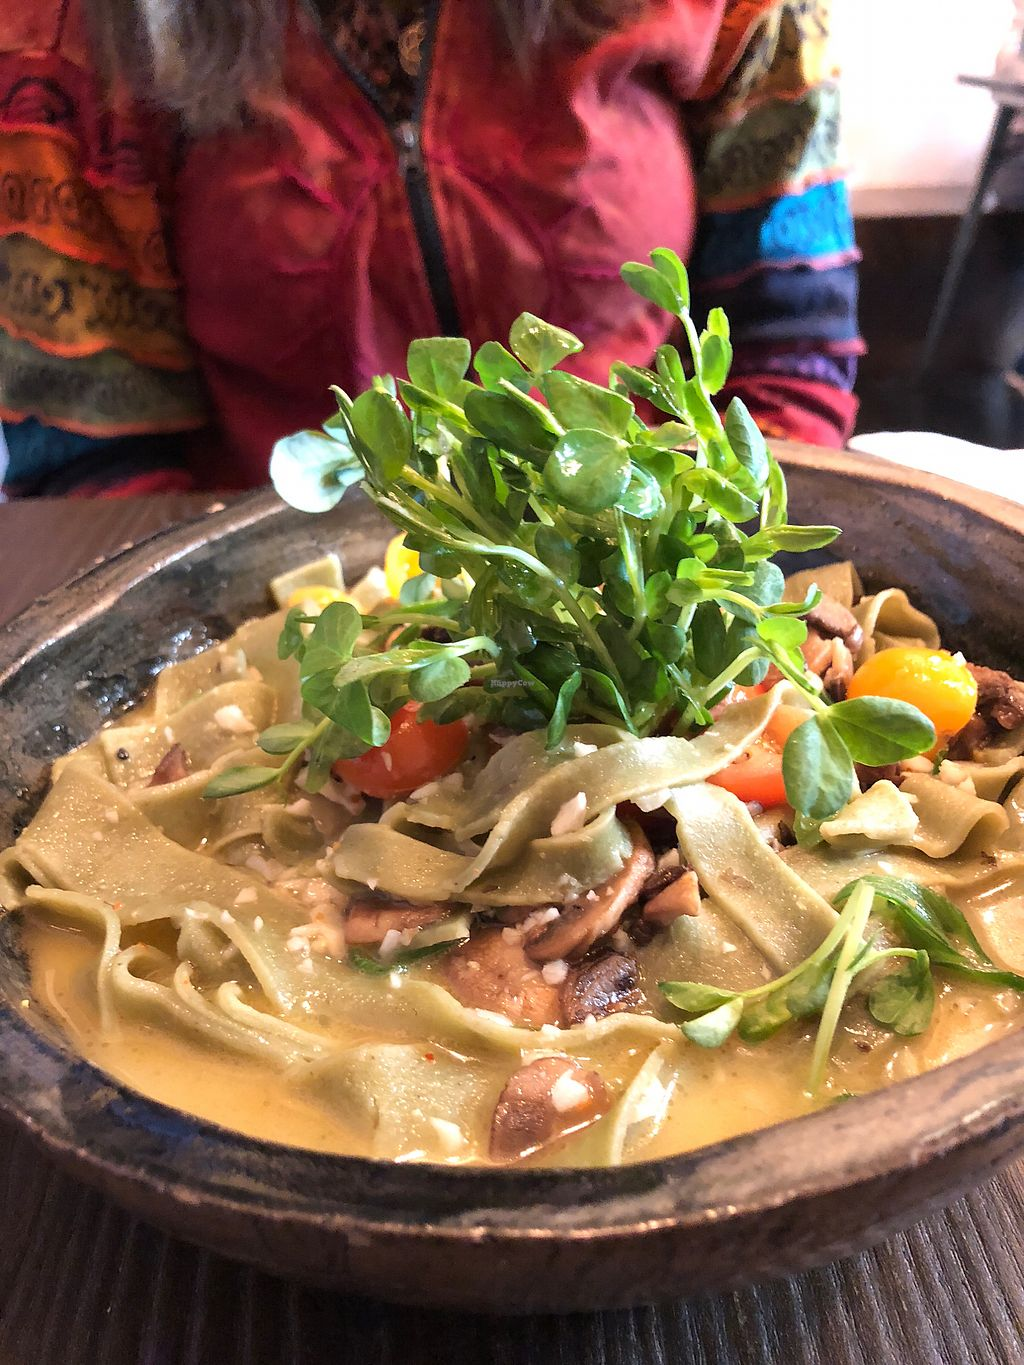 """Photo of Panacea  by <a href=""""/members/profile/DebbieFrye"""">DebbieFrye</a> <br/>Fettuccine without the spicy topping <br/> February 11, 2018  - <a href='/contact/abuse/image/106333/358069'>Report</a>"""